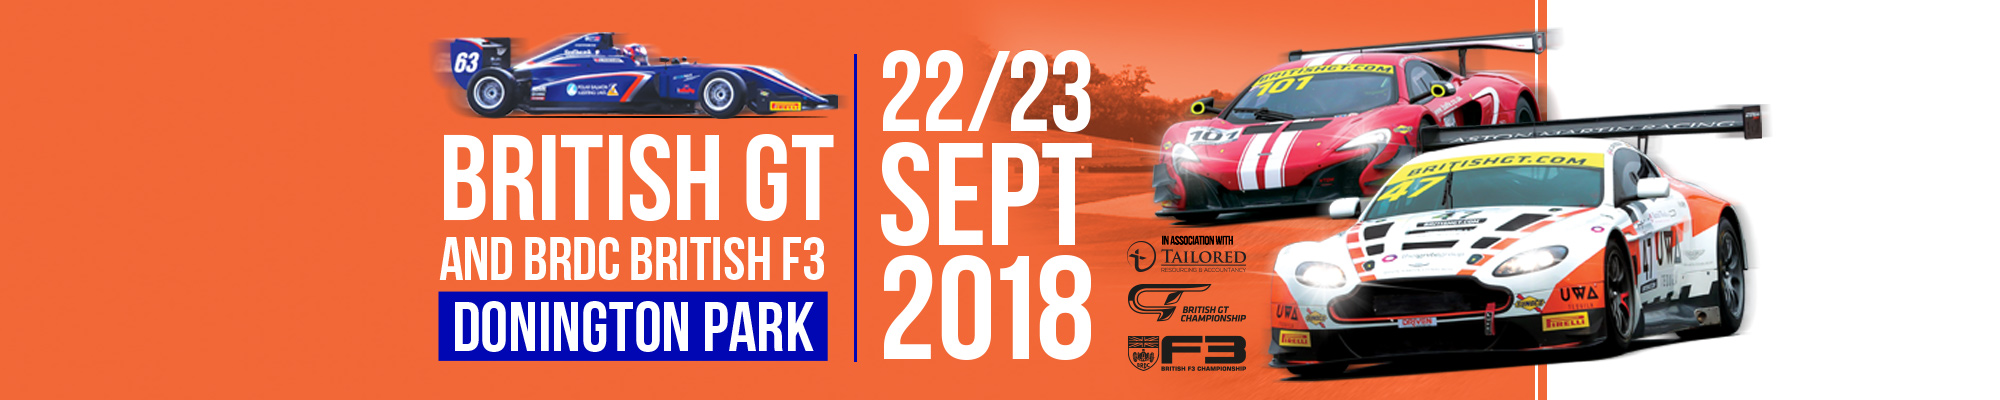 Msv Tickets British Gt F3 Championships Donington Park Back Gallery For Parallel Circuit Definition Kids